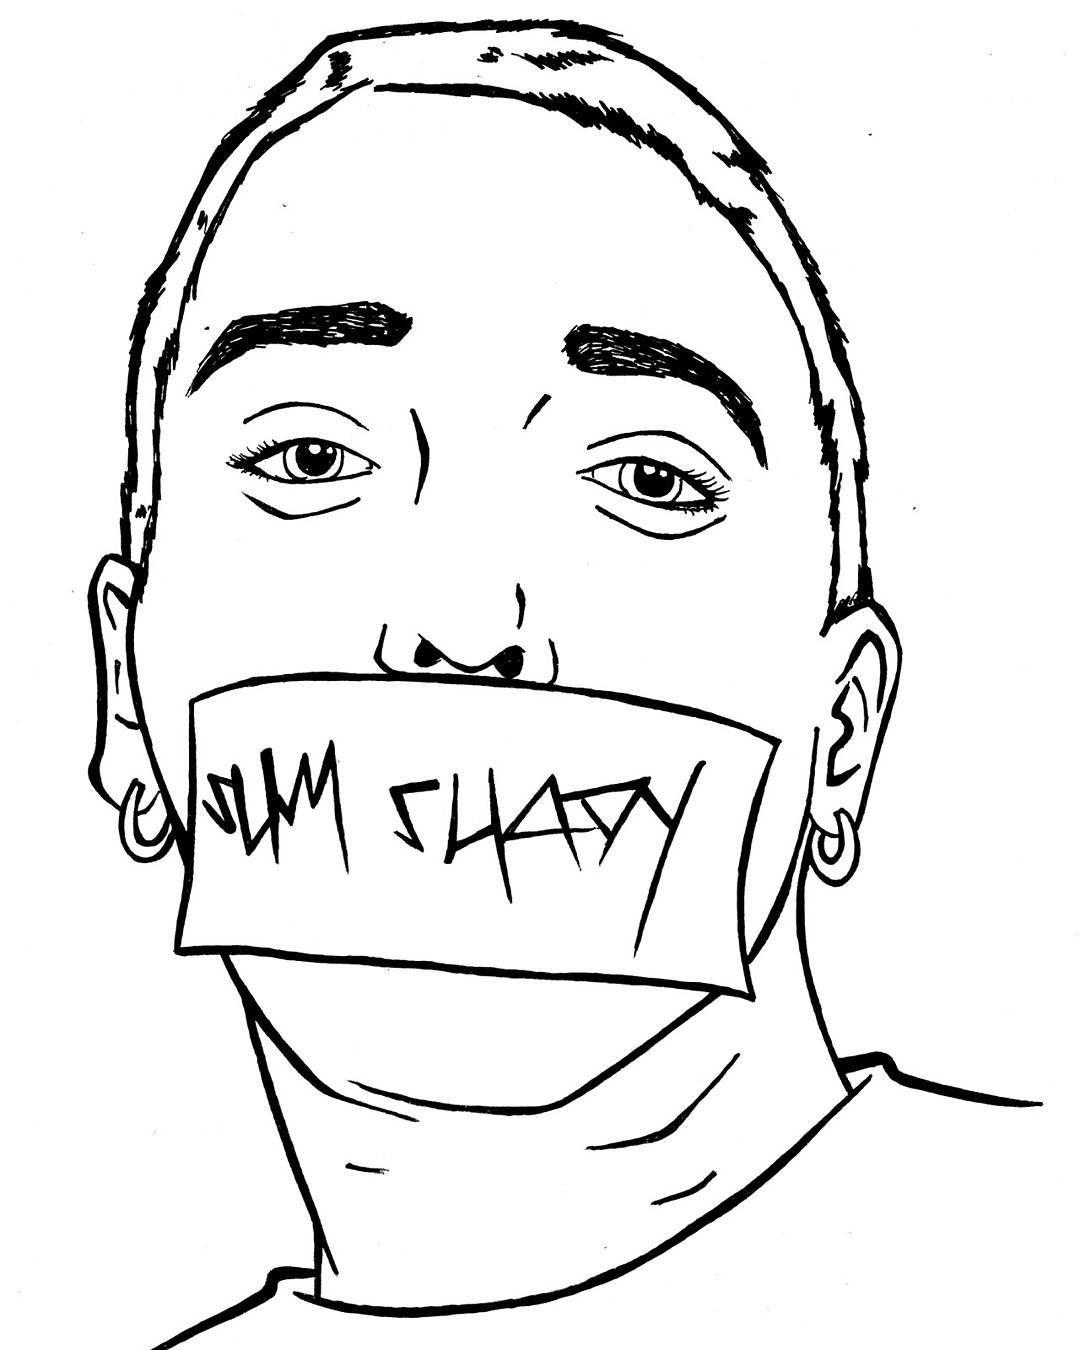 Coloring Page Eminem Famous People Coloring Pages